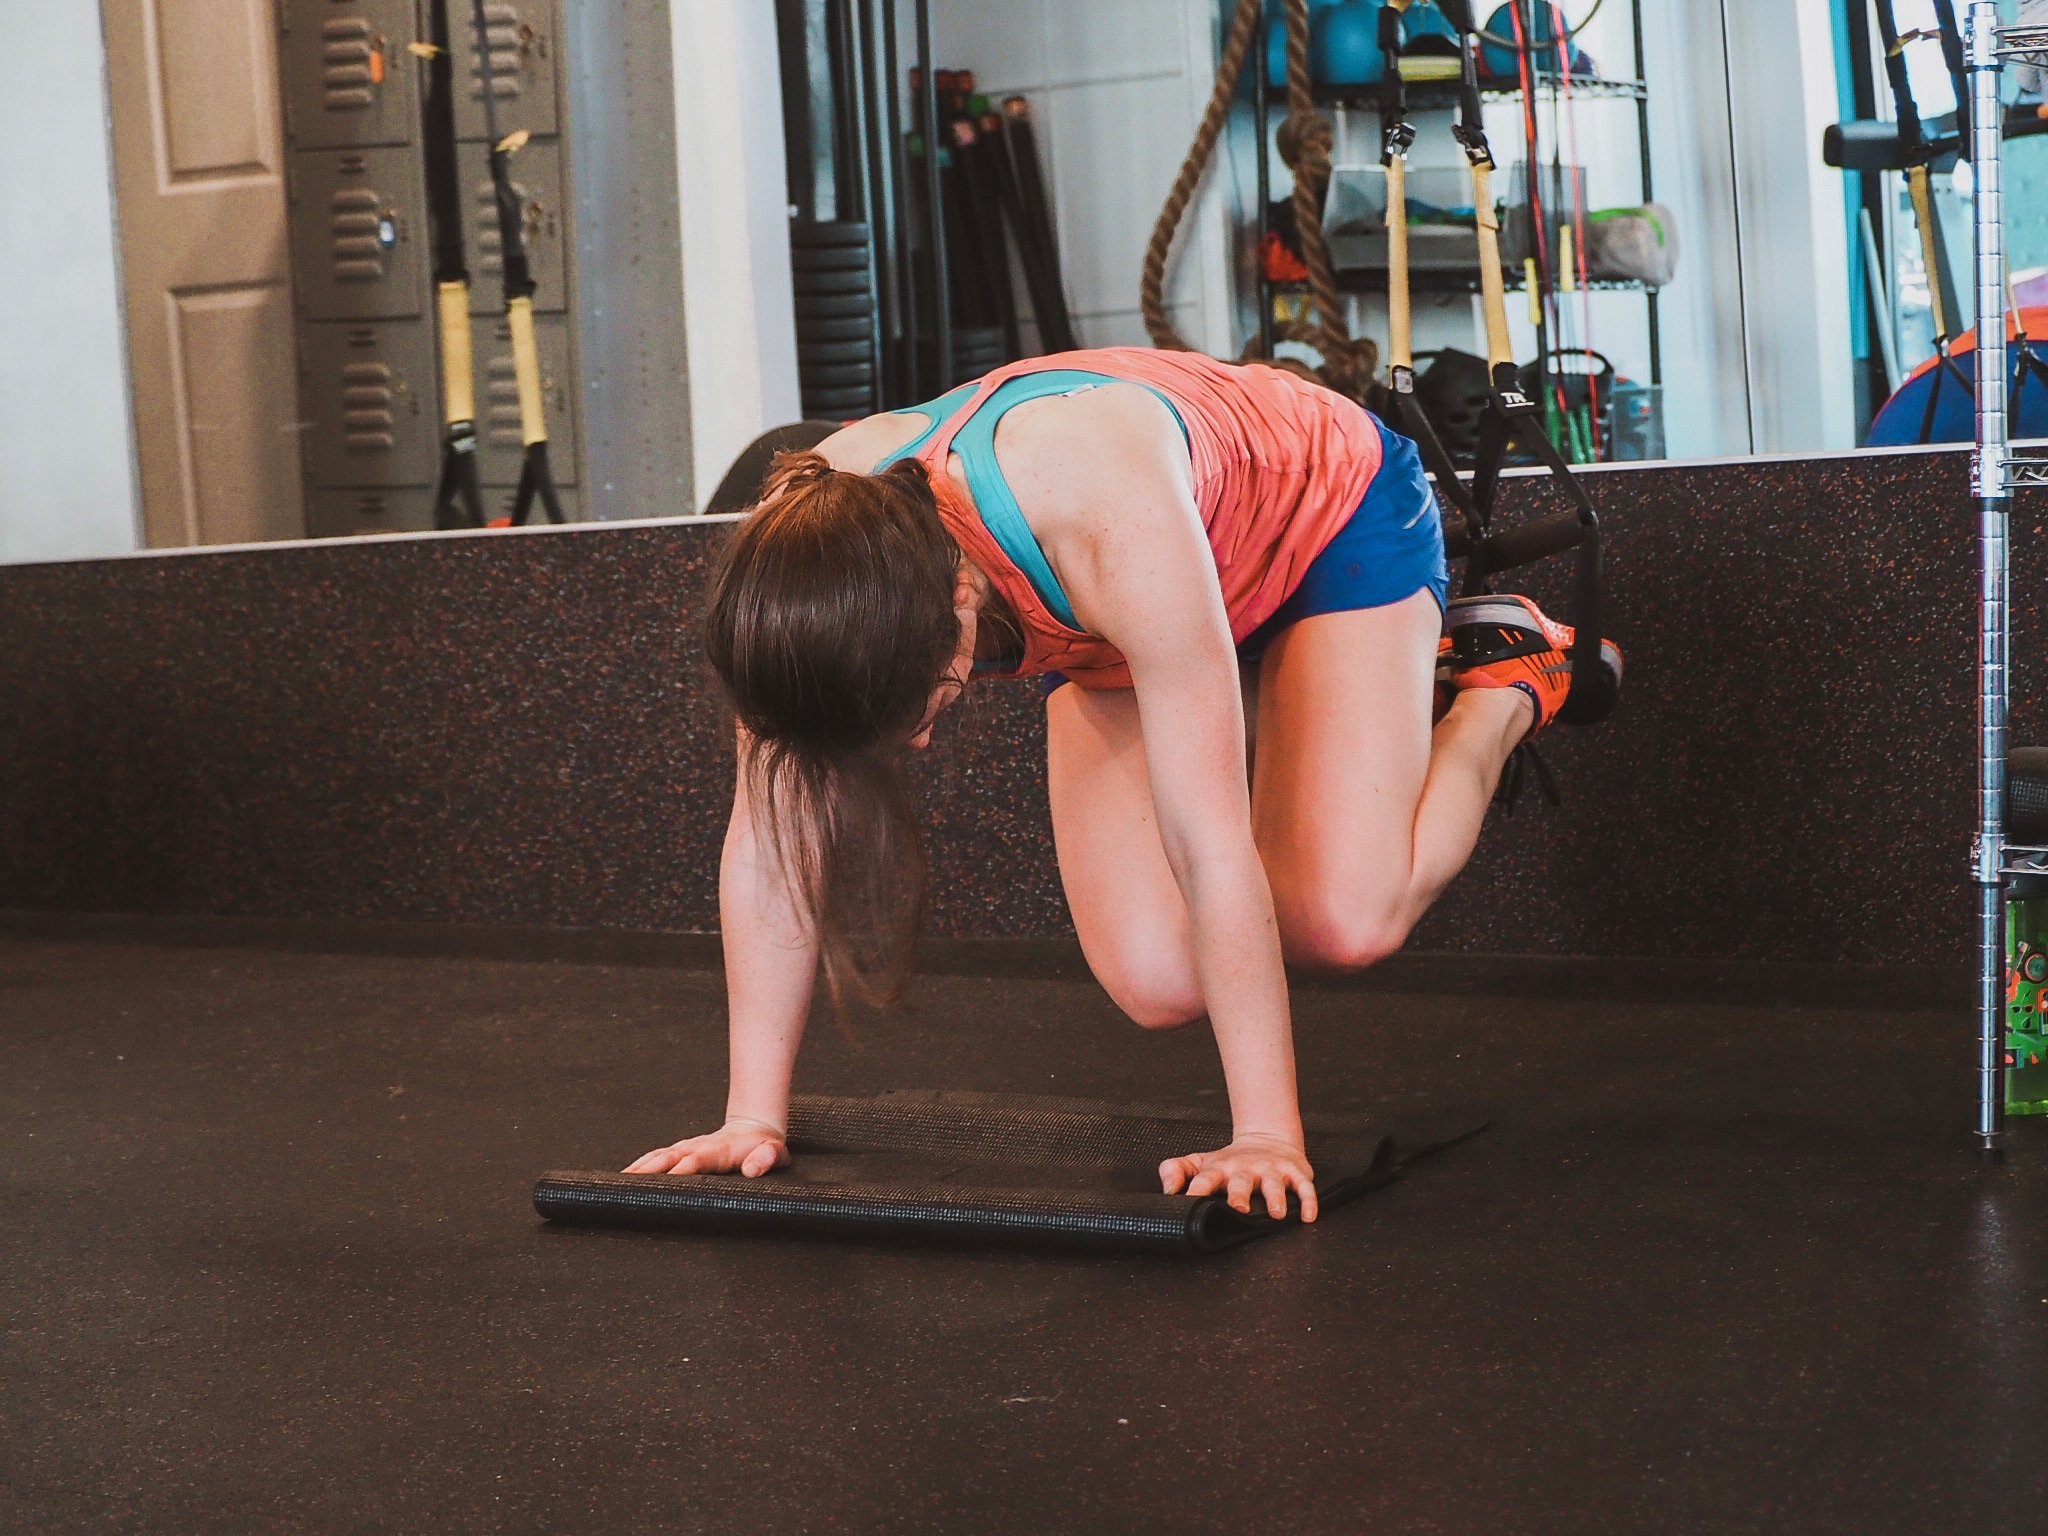 "in-studio Personal Training - FIRST SESSION IS FREEIn-Studio Personal Training** NOW OFFERING SKYPE and FACETIME SESSIONS! **NGU Personal Training programs are designed to have our athletes and clients reach their personal goals in the most efficient and healthy way possible. Our private sessions are customized to your own fitness level, personal goals, as well as any past athletic history, injuries and health conditions.NGU values our client/trainer relationships. We see everyone as a community and as family. We offer 24/7 availability for our clients to answer any questions or concerns via email and phone. In addition, our trainers check in with clients and offer tailored tips to help you reach your goals. We believe the work to reach your goals does not take a pause when you walk out the door - we're here to help you all the time!What Can You Expect? What's the Process Like?During your first FREE 30-minute session, your certified trainer will meet with you to go over your personal goals and evaluate your fitness level in order to properly construct a personalized plan moving forward. Each session thereafter will be a 50-minute workout, each acting as a building block to the last. The workouts will always challenge you, motivate you and will push you to be better, stronger, more fit, happier and healthier than you were the session before. Our one-on-one workouts are a wonderful tool for more personalized attention and a workout tailored to your specific needs. We will have you seeing results faster than ever before!Our ""Duo Personal Sessions"" are also there as an option for those who enjoy working out with a friend or family member, but want the more personalized attention received through a personal session rather than class."